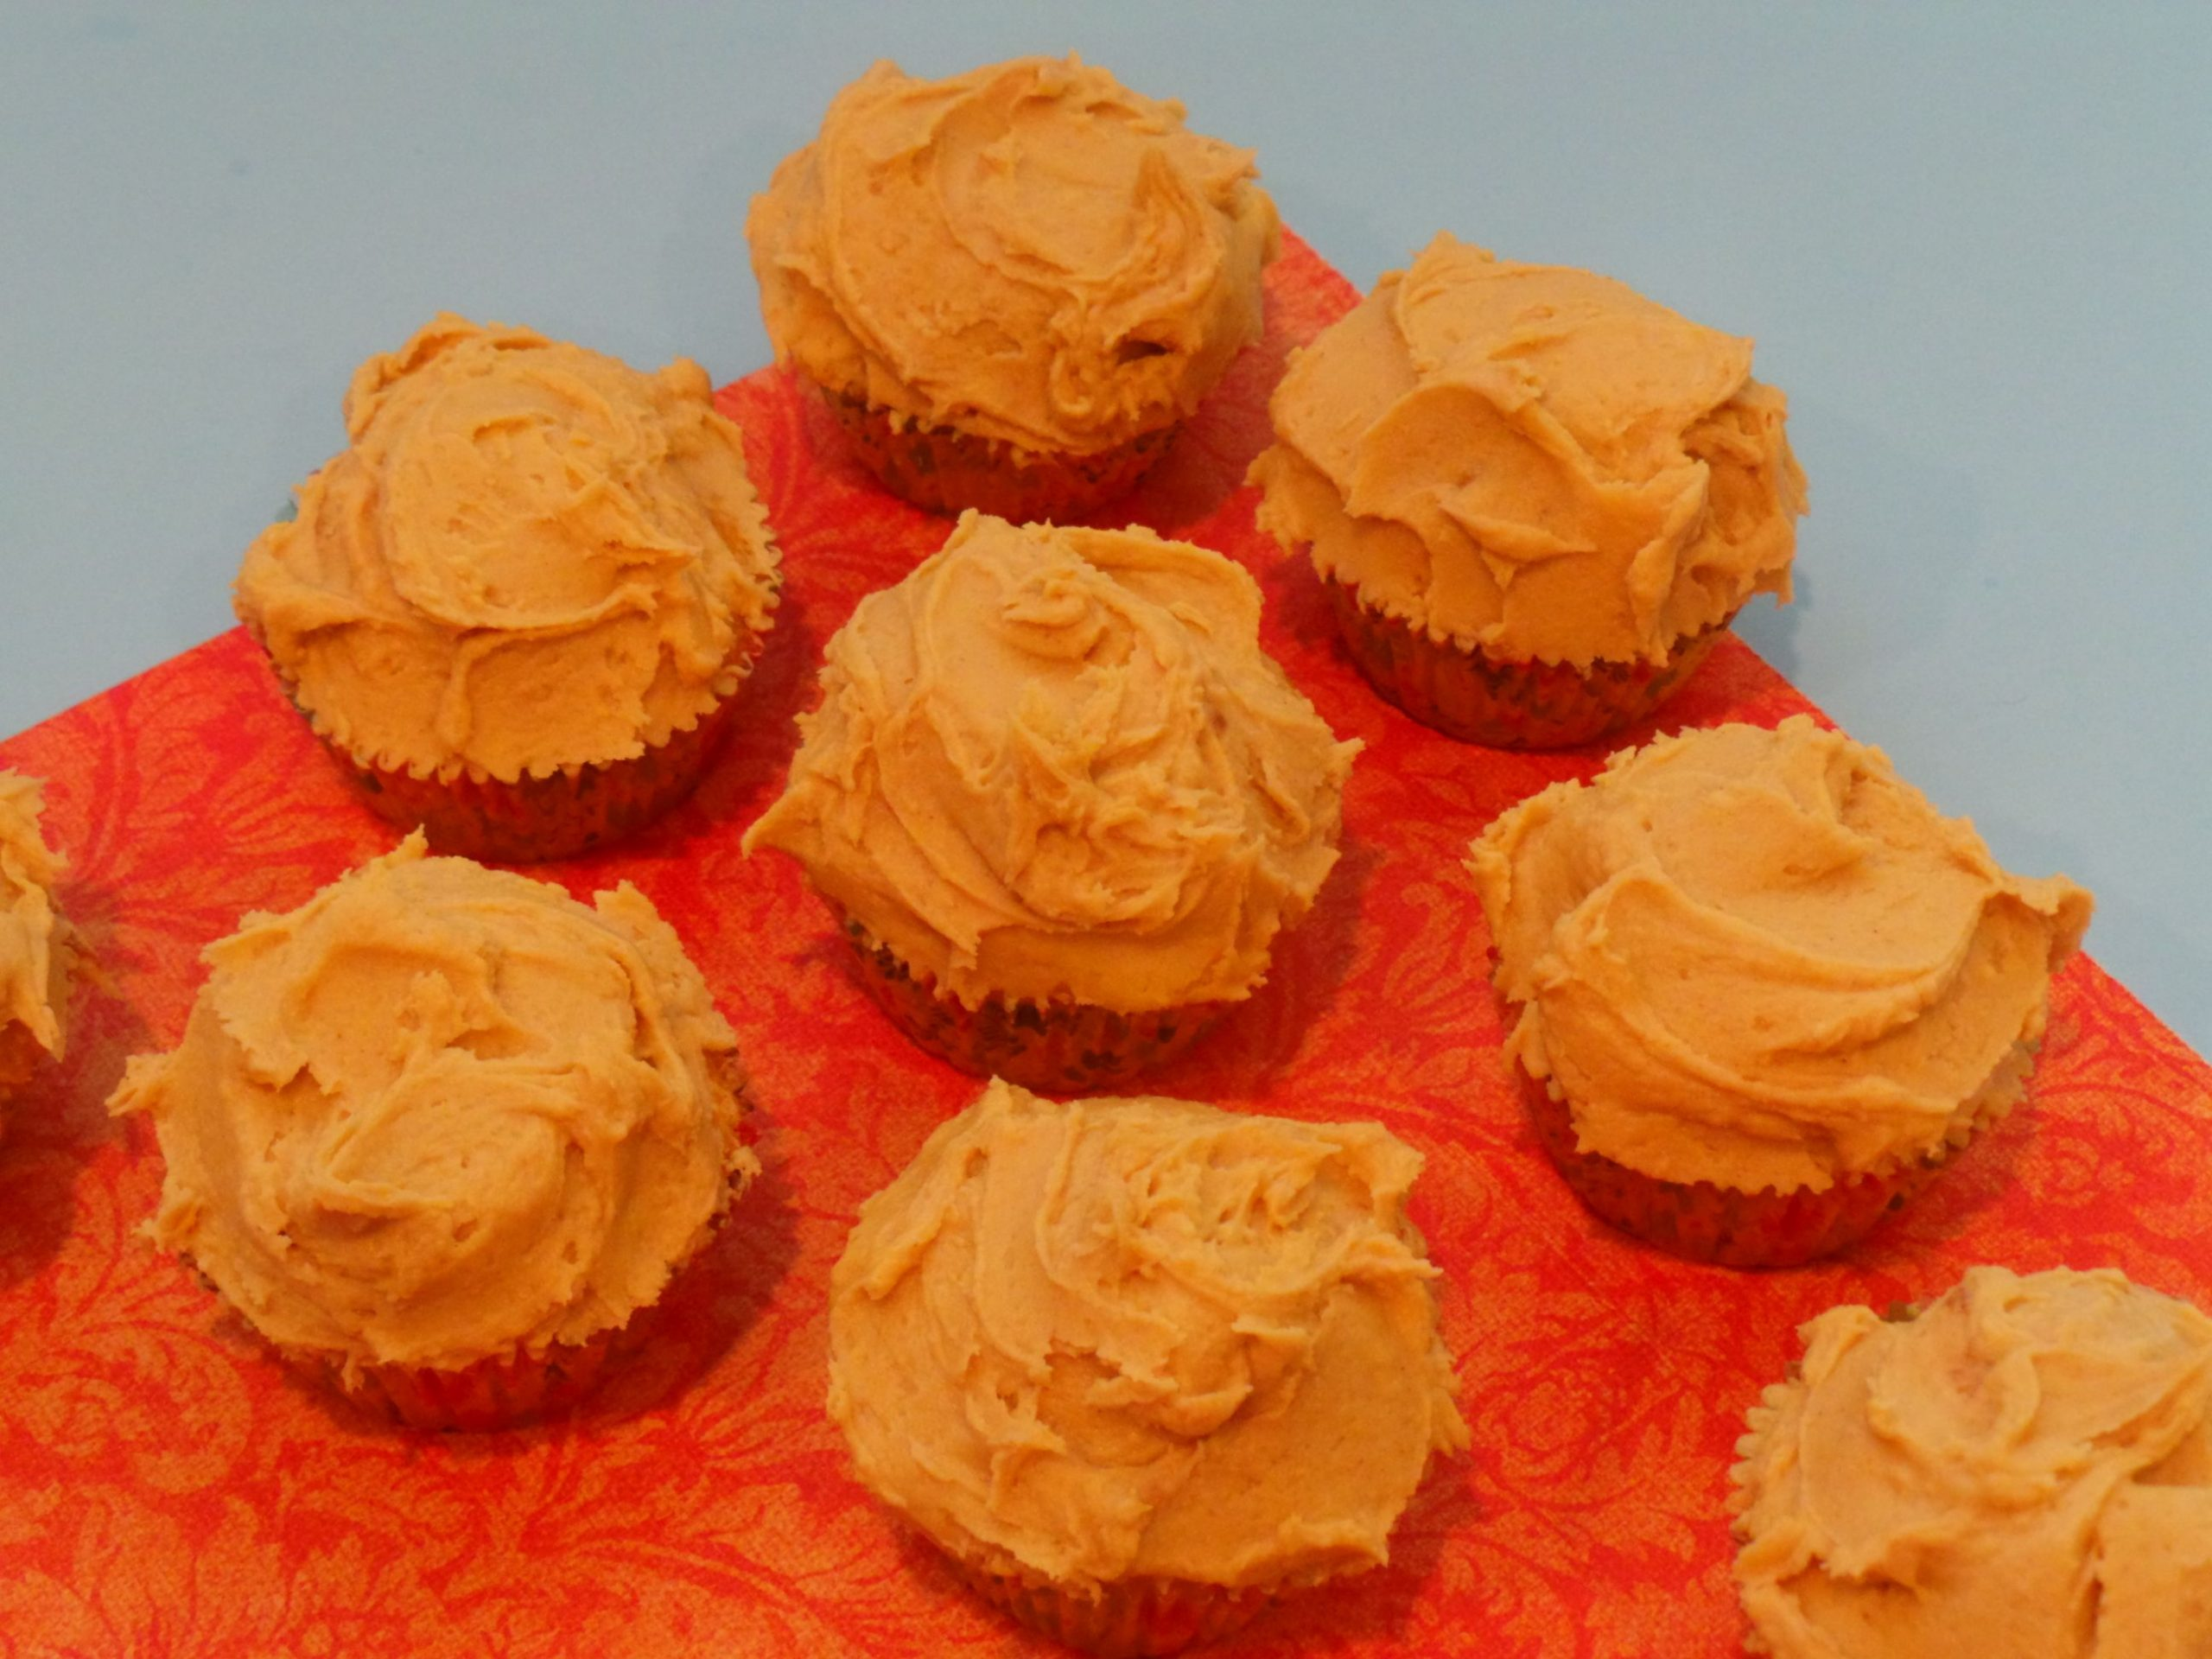 Dish of the Day: Cupcakes Your Way!